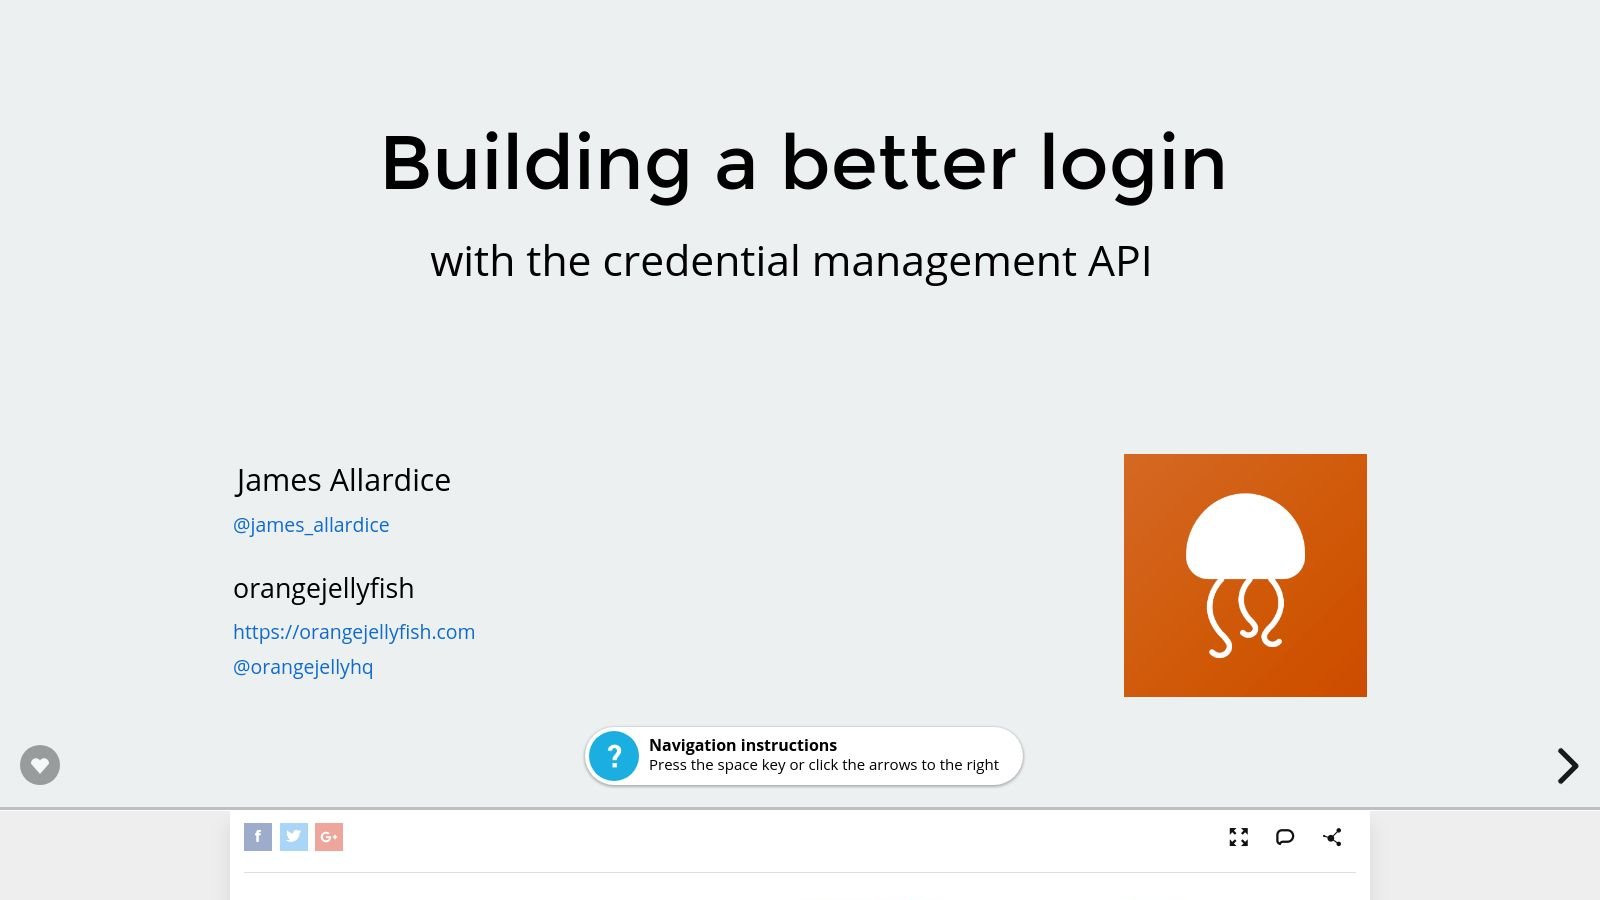 Building a better login with the Credential Management API